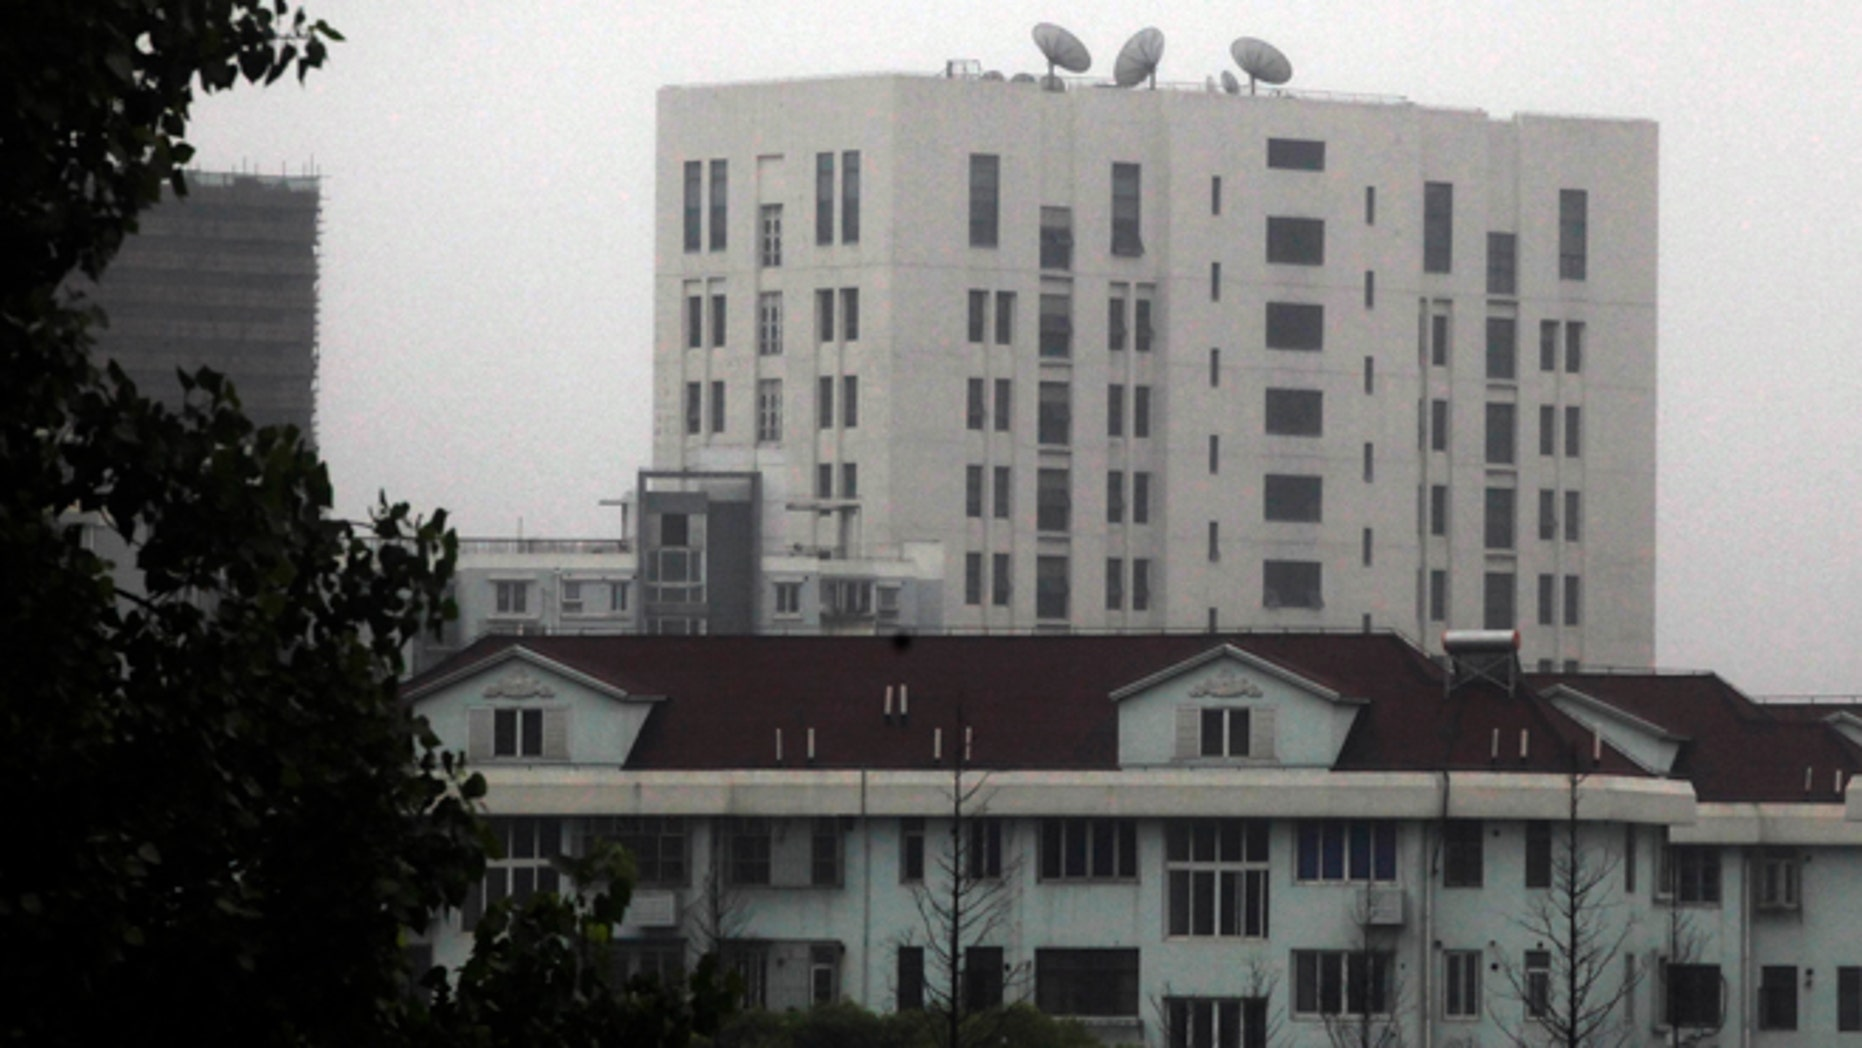 This May 31, 2013 photo shows the building housing Unit 61398 of the Peoples Liberation Army, center top, in the outskirts of Shanghai, China. After years of quiet and largely unsuccessful diplomacy, the U.S. has brought its persistent computer-hacking problems with China into the open, delivering a steady drumbeat of reports accusing Beijings government and military of computer-based attacks against America. Officials say the new strategy may be having some impact.